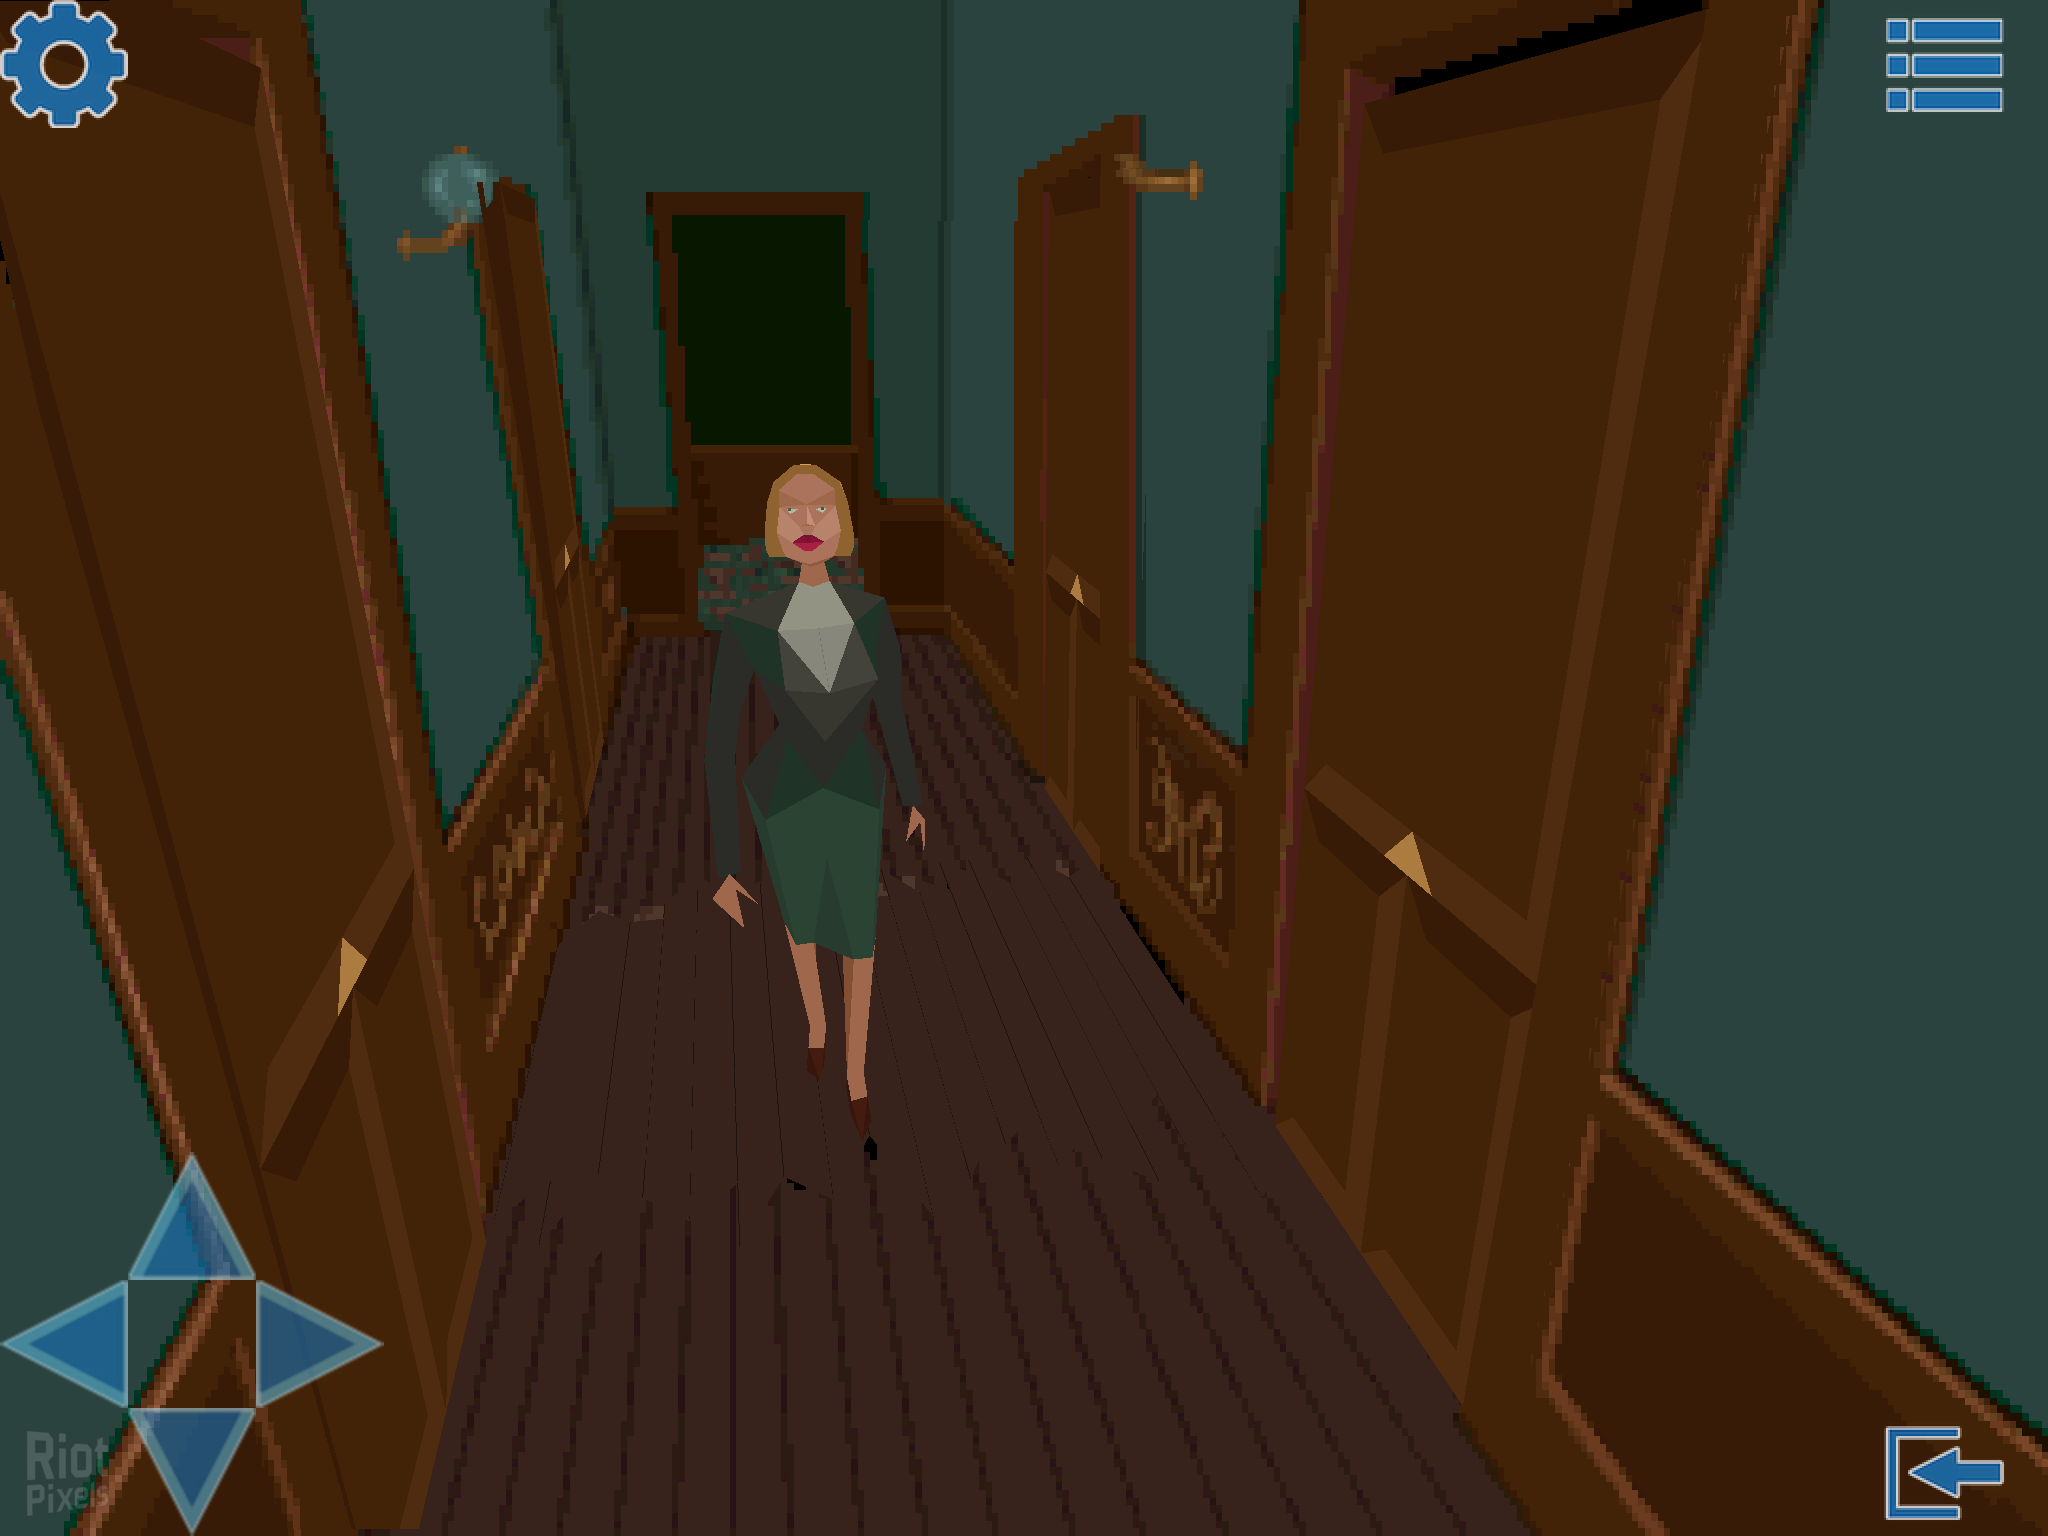 Alone In The Dark I 1992 Game Screenshots At Riot Pixels Images